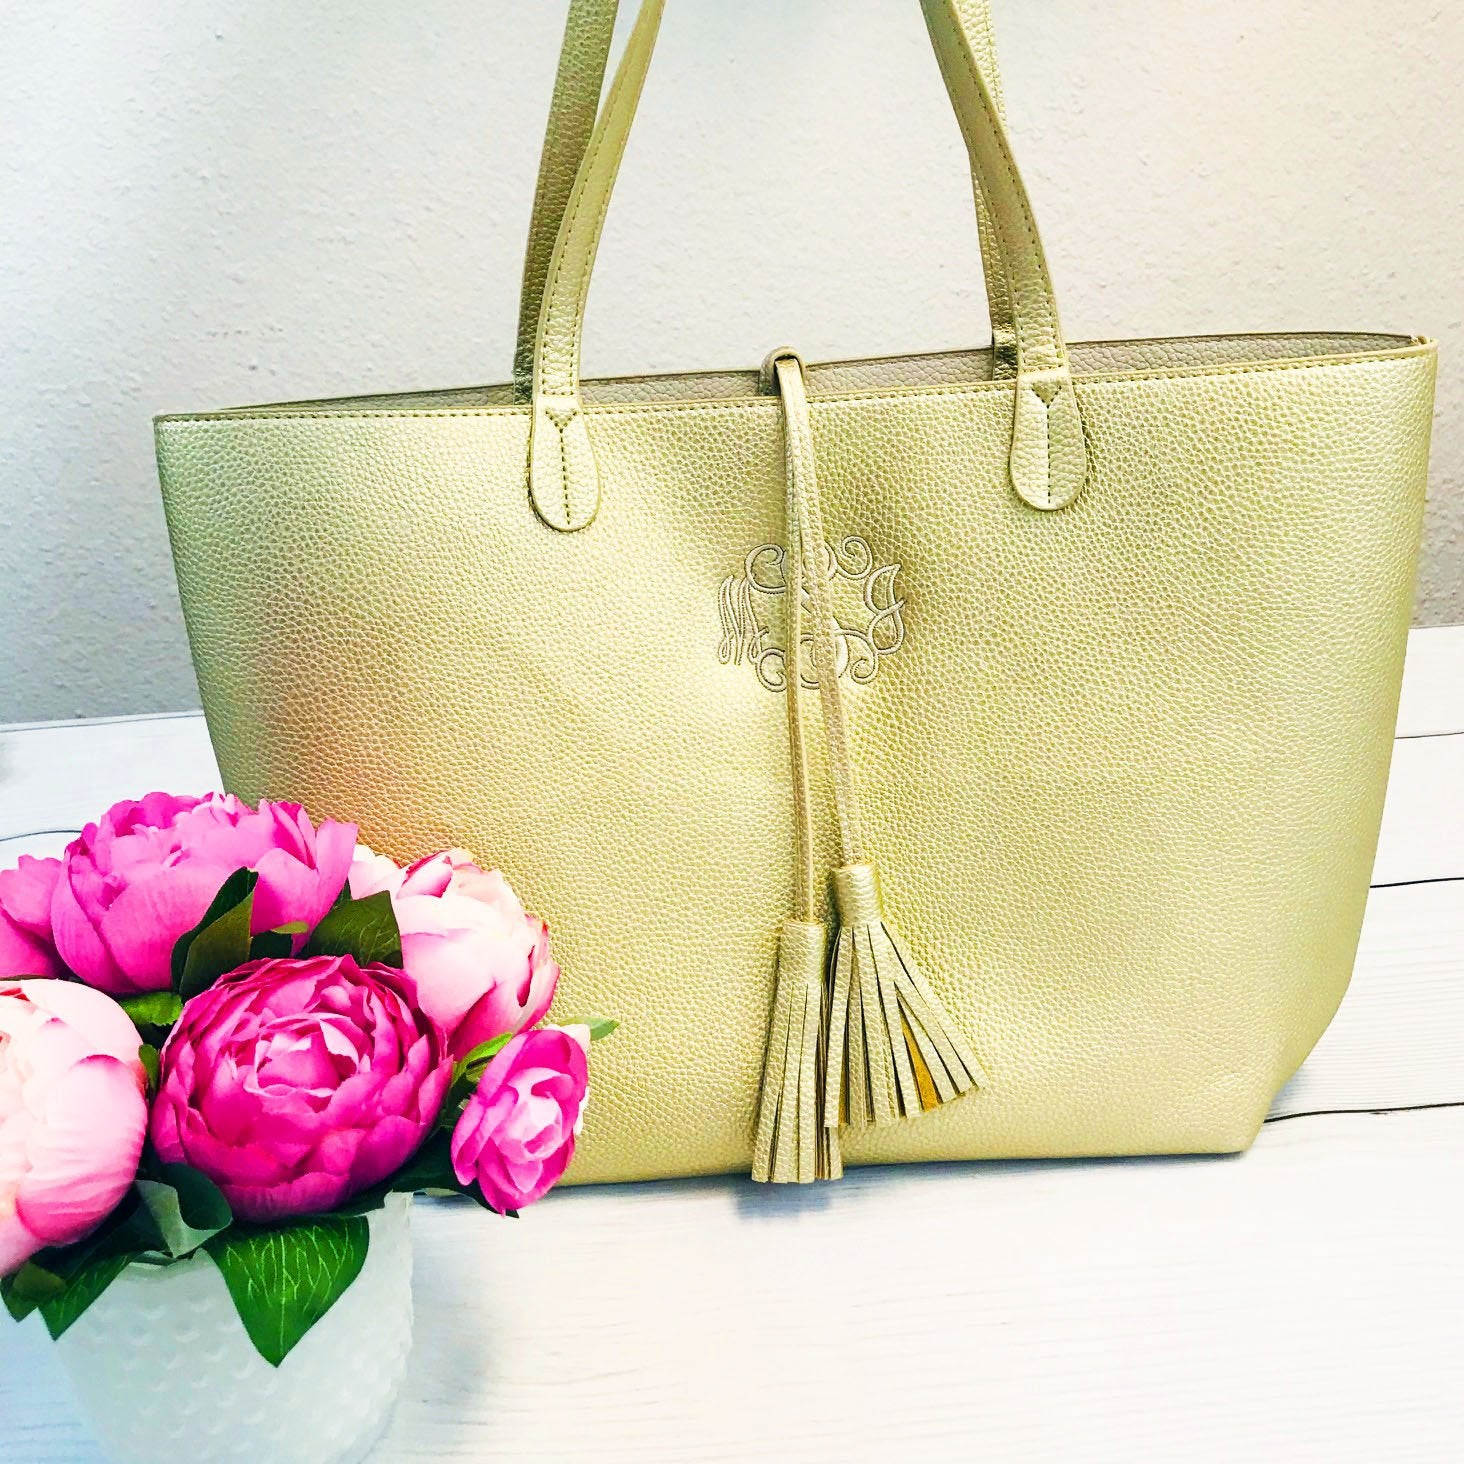 Embellish Metallic Gold Faux Leather Purse with Tassel Tie | Monogrammed | QUICK SHIP